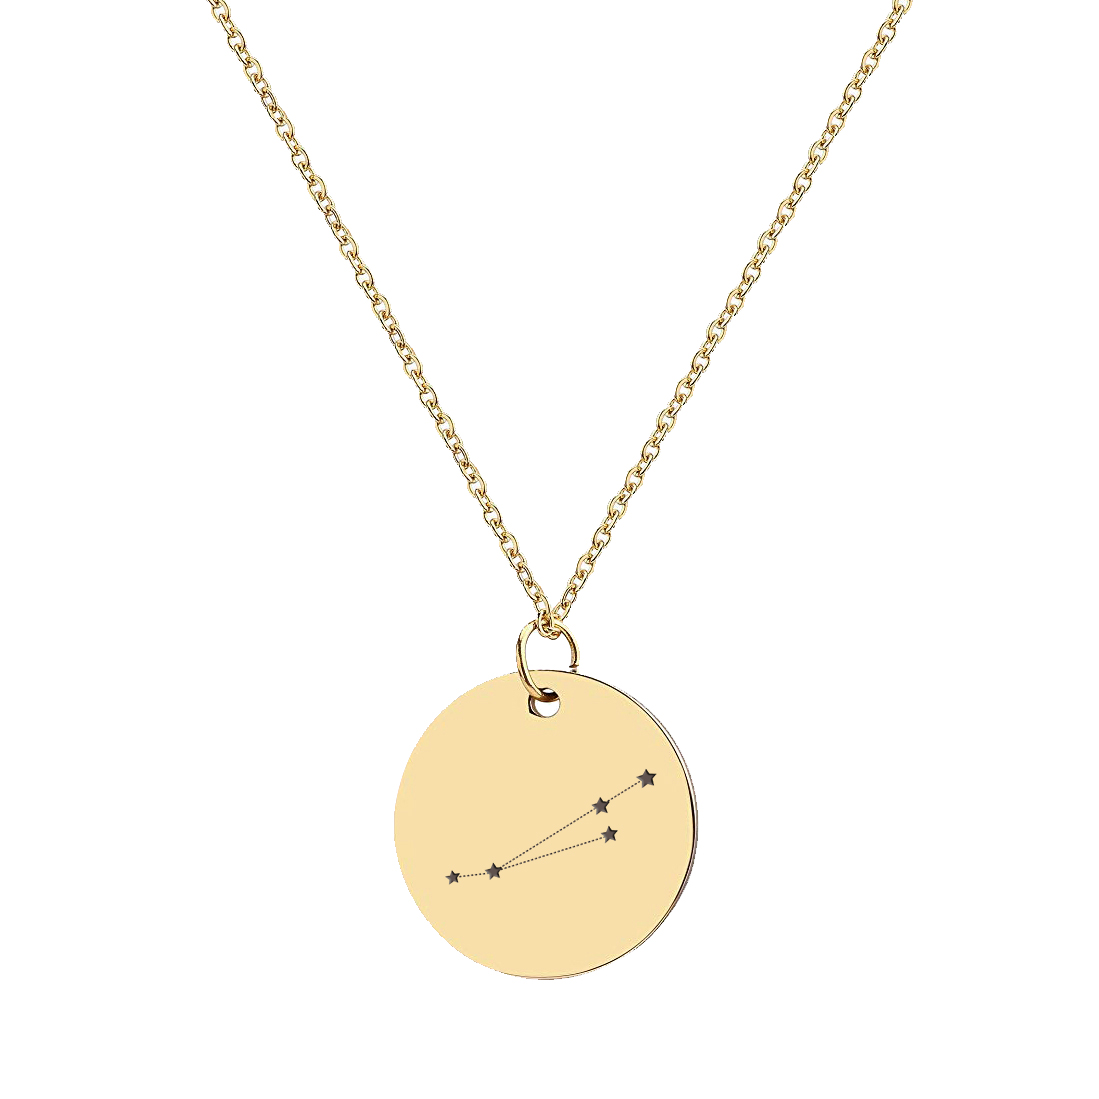 Personalized Jewelry Aries Constellation Necklace Birthday Gift Zodiac Constellation Necklace Star Sign Necklace Zodiac Necklace